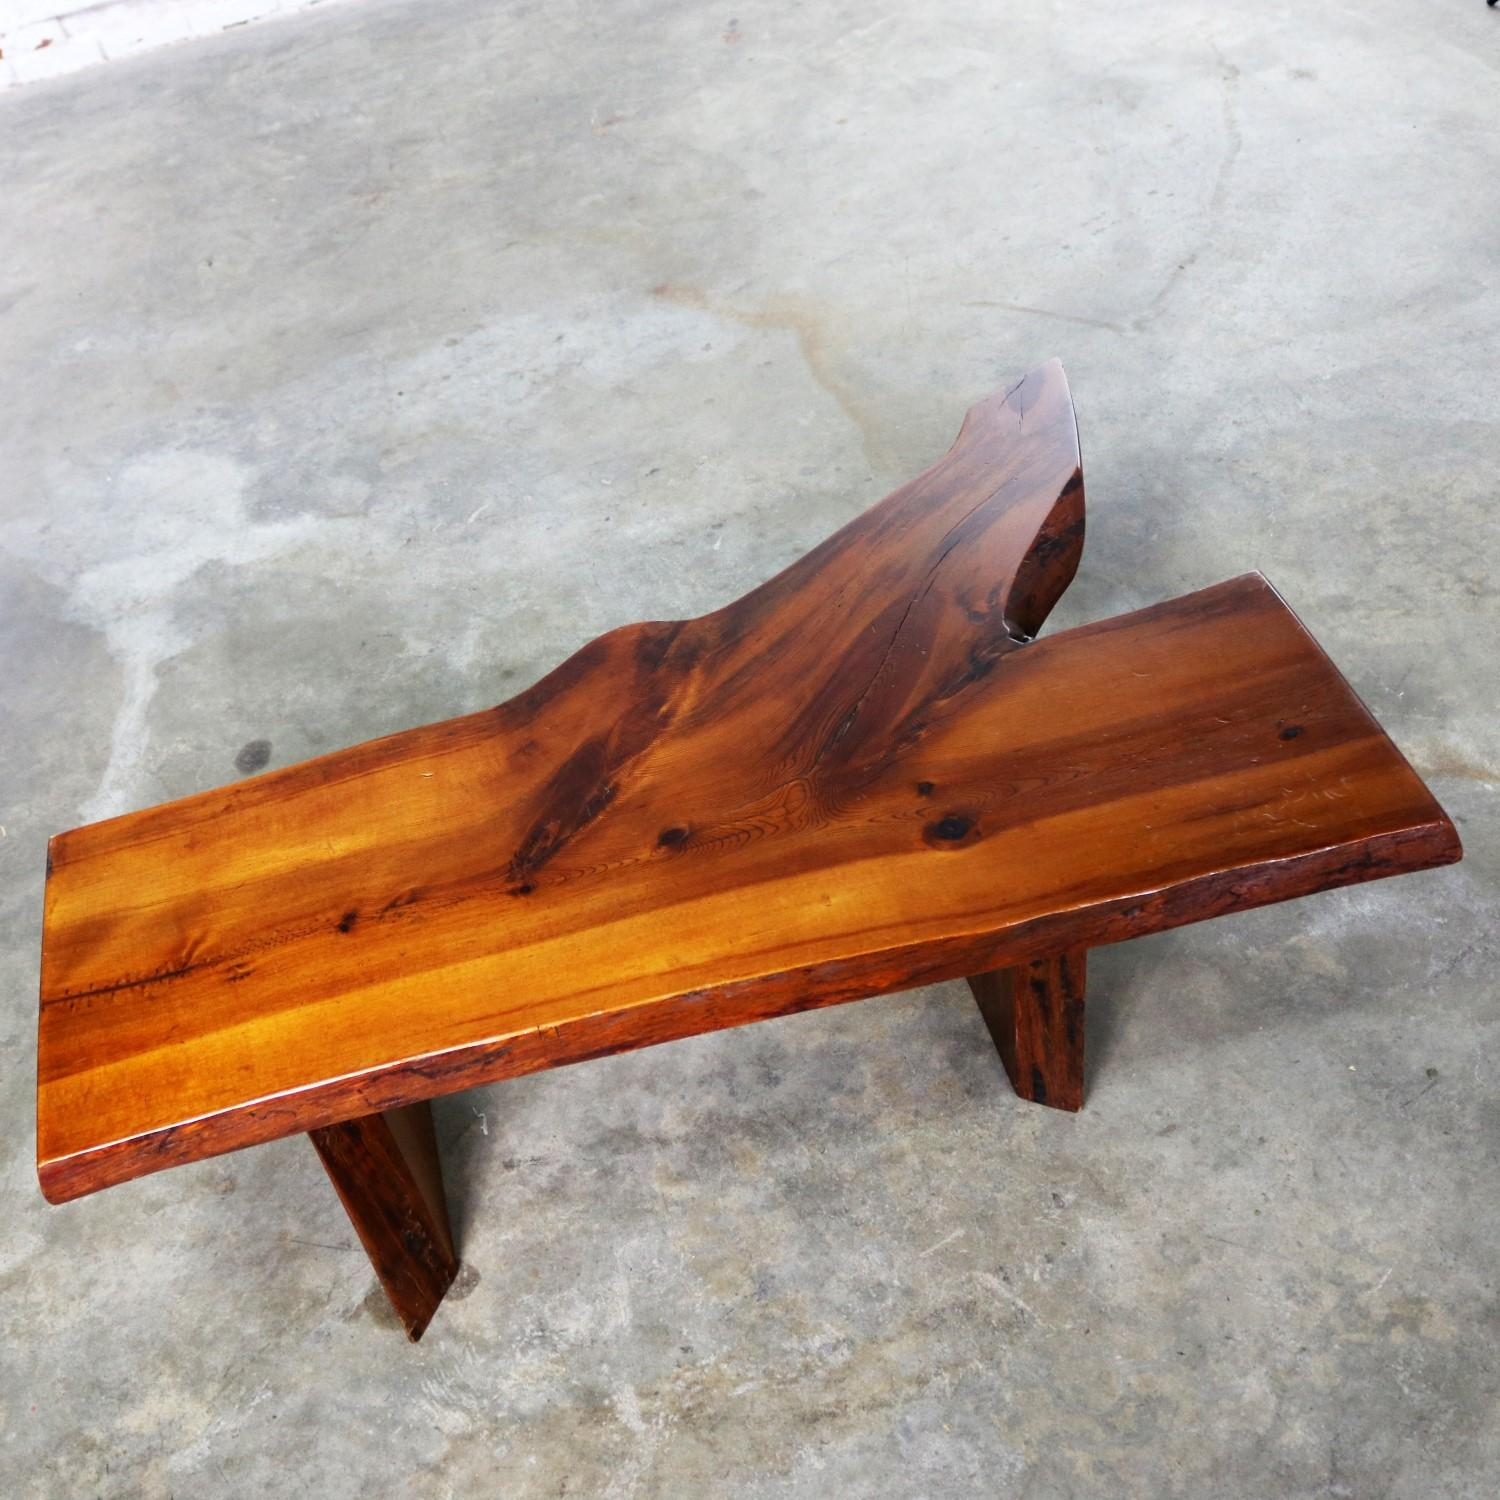 Magnificent Live Edge Solid Slab Coffee Table Or Bench In The Style Of George Nakashima Evergreenethics Interior Chair Design Evergreenethicsorg